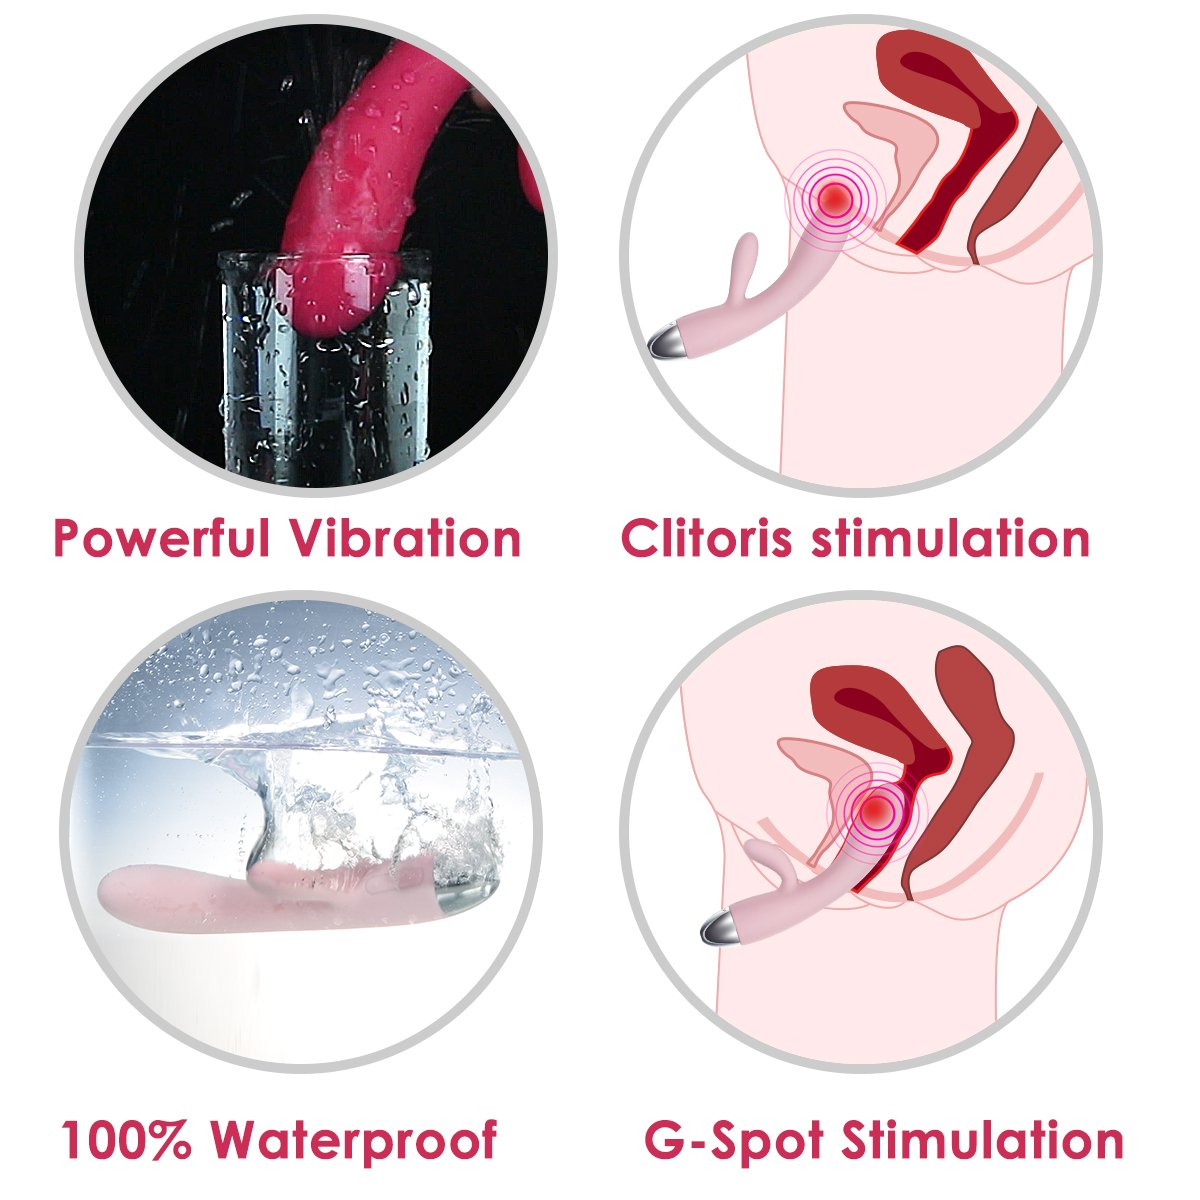 SVAKOM Alice 100% Waterproof Intelligent Clitoris G-spot Rabbit Vibrator Rechargeable(Pale Pink)